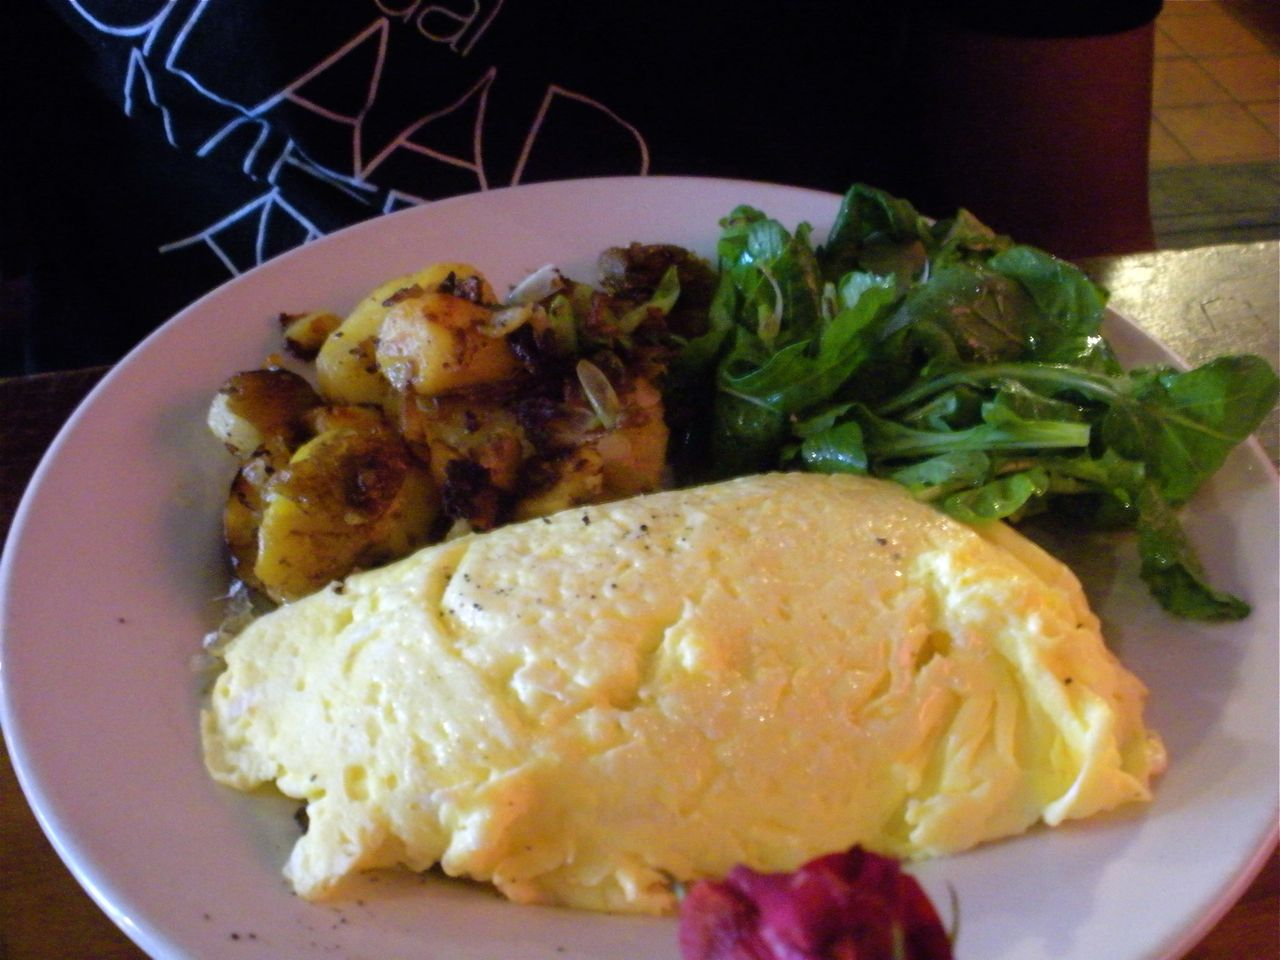 Omelet with caramelized onions and mushrooms.